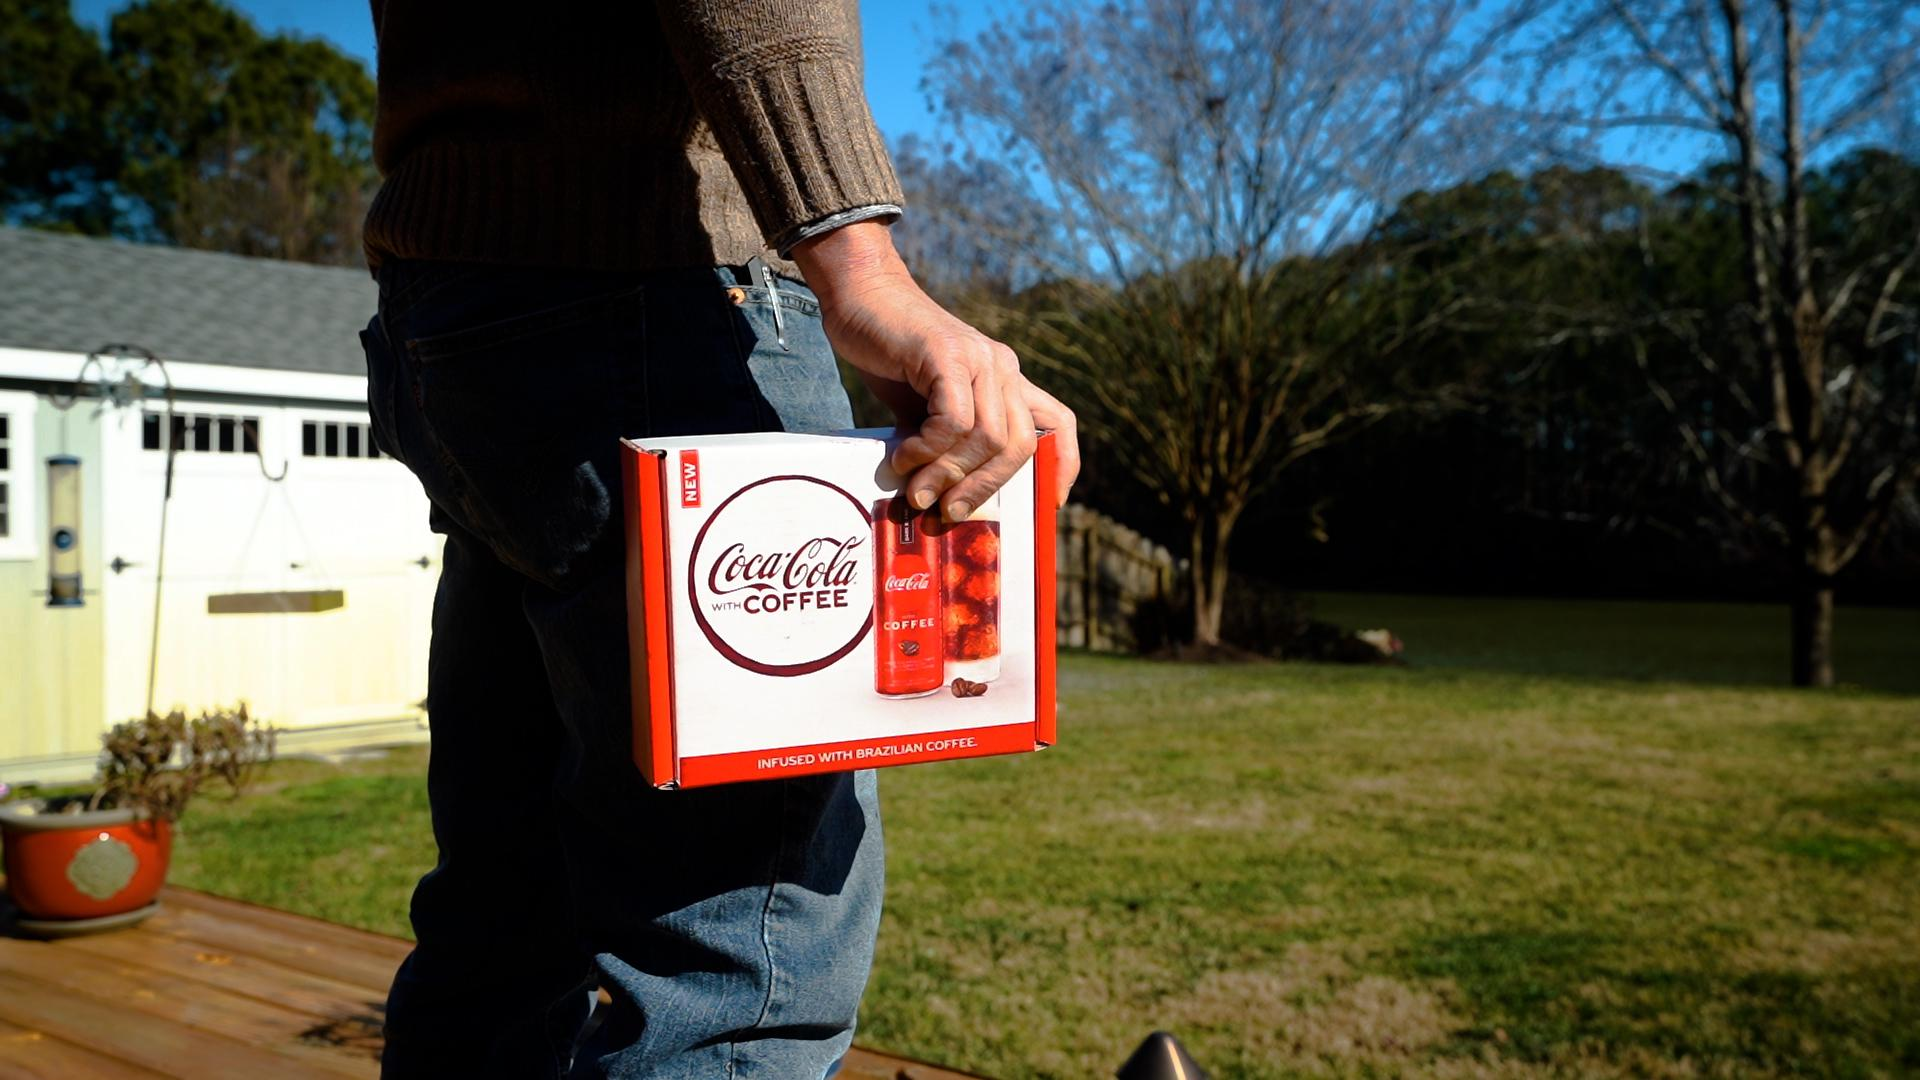 Consumer holding a box of Coca-Cola with Coffee